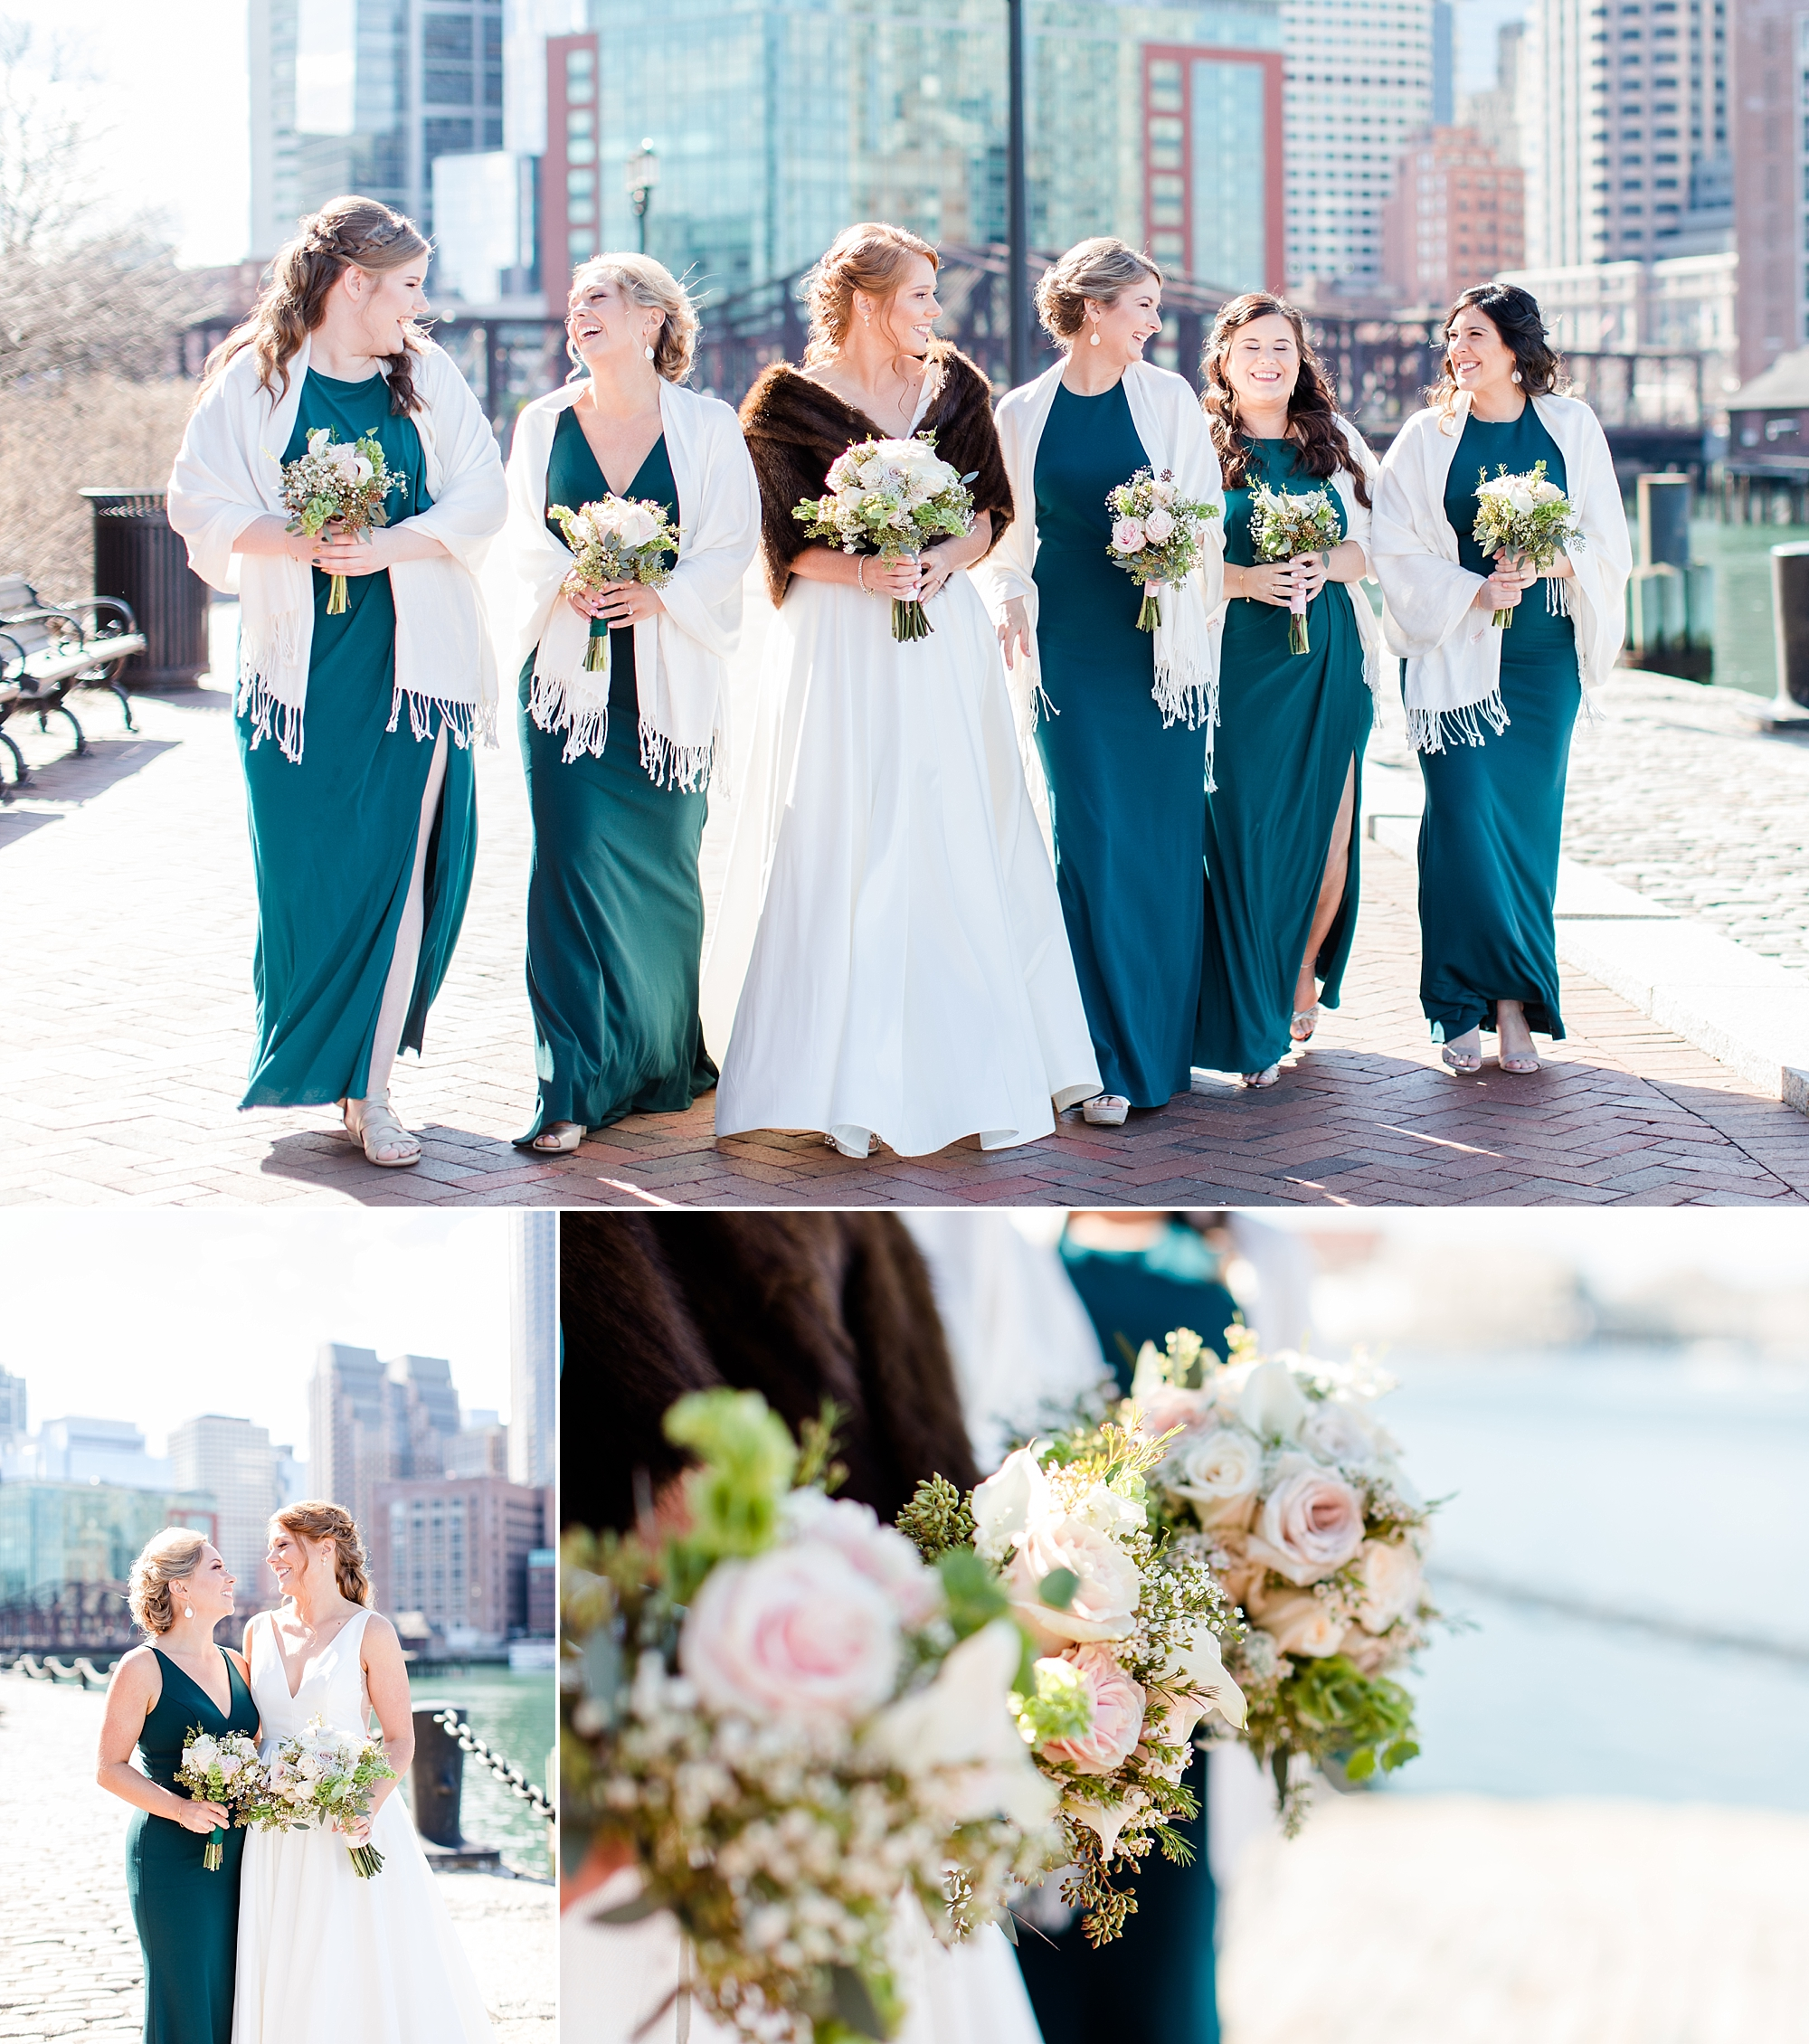 Pro tip: If you want to be blessed by the presence of cute puppies and bundled babies in strollers, you'll want to take bridal party photos here! Every two seconds there was a new pup or babe to gush over. It was simply amazing!